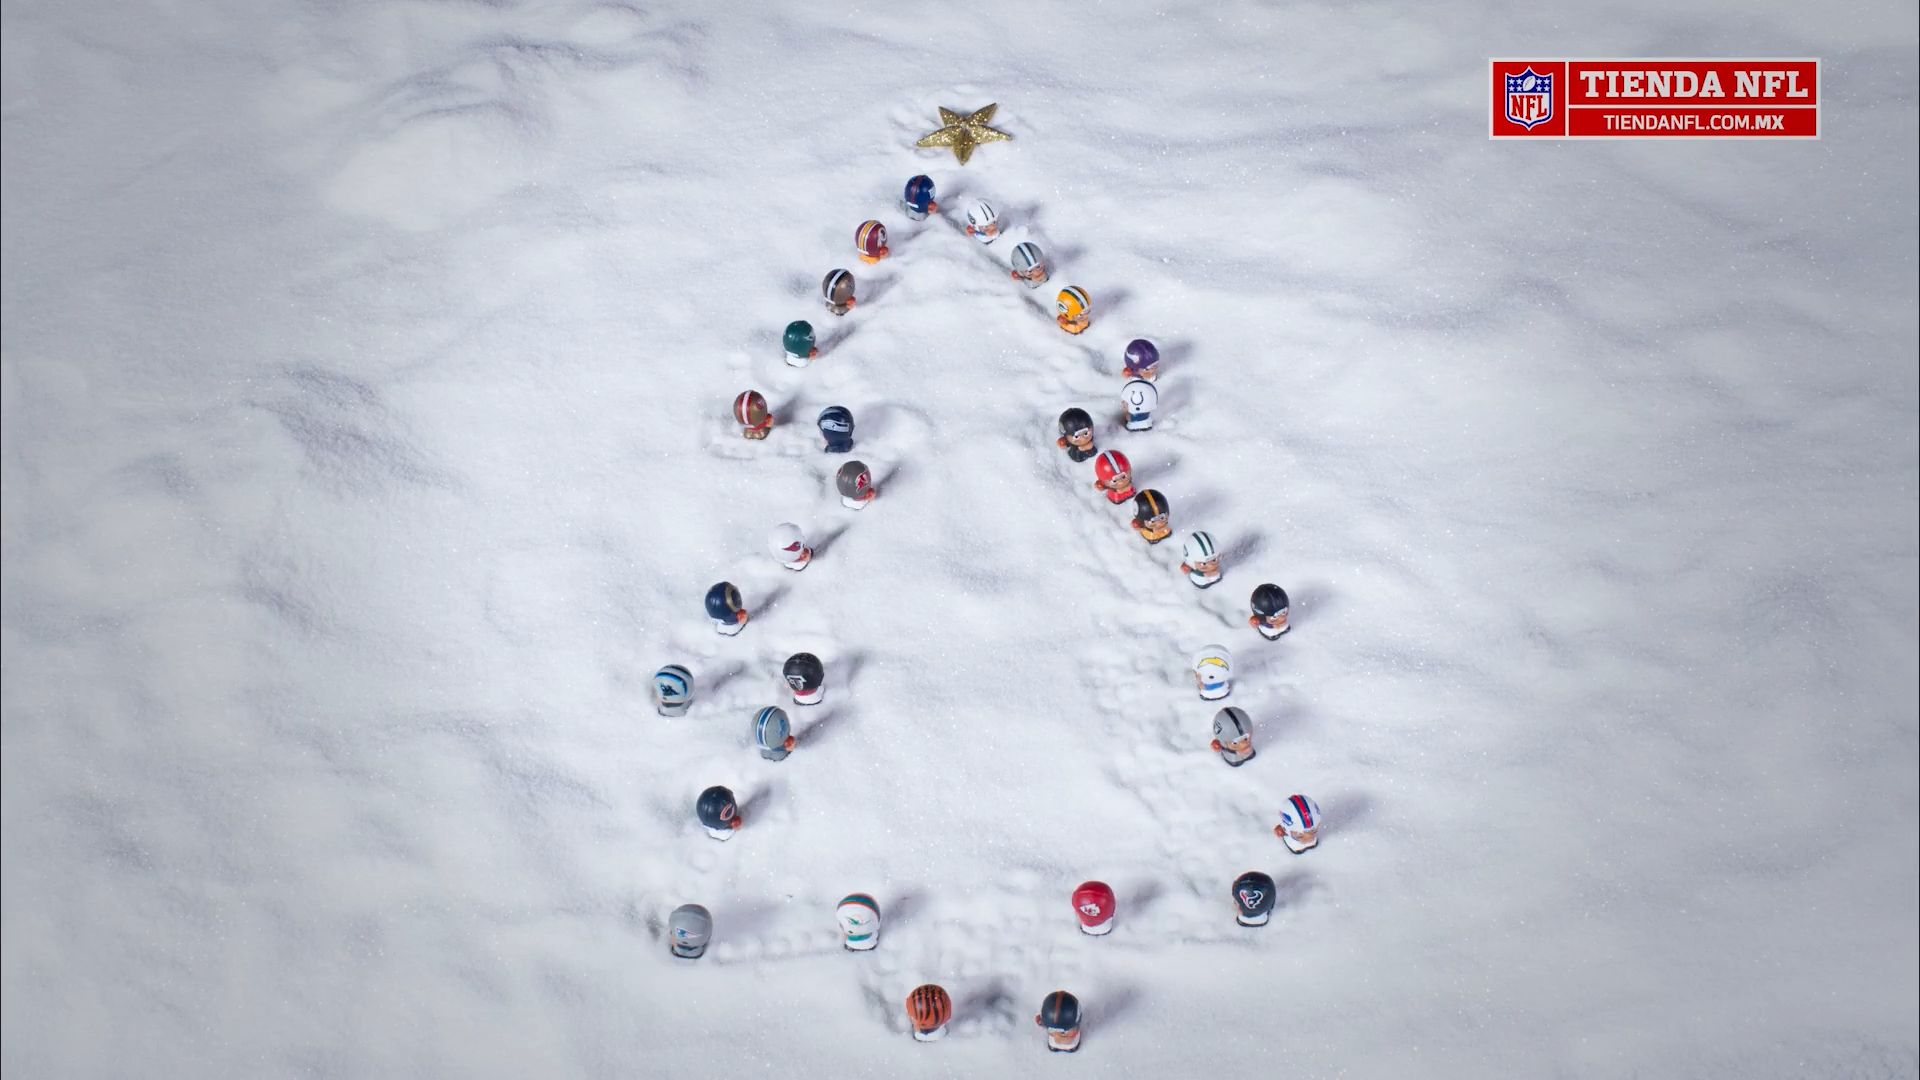 The NFL toys make a Christmas tree in the snow.